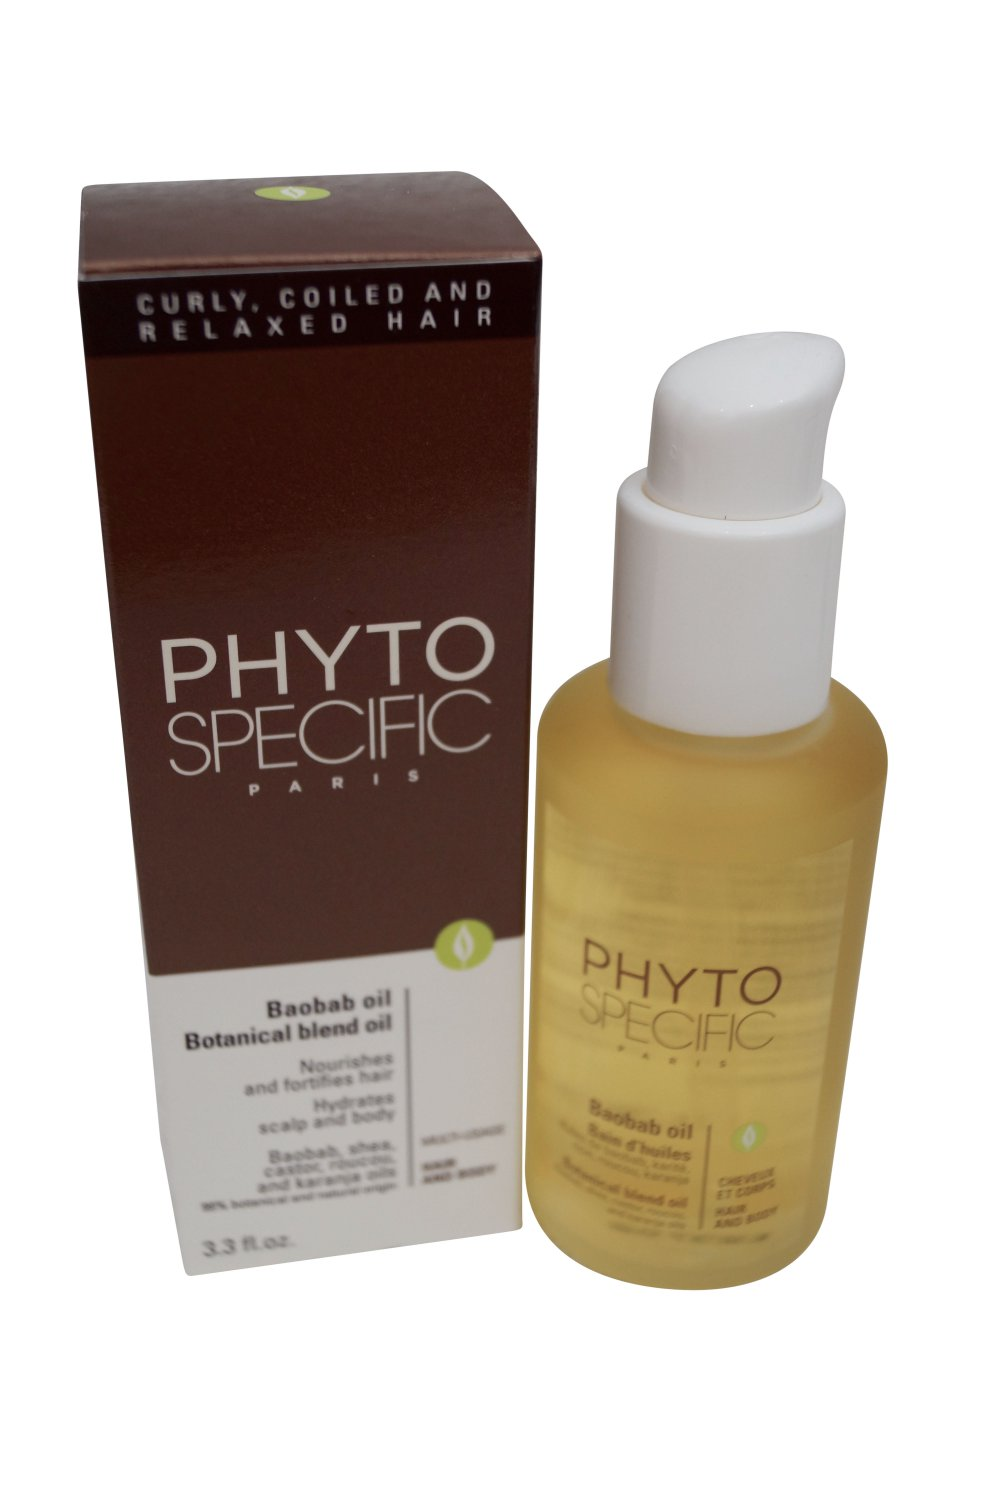 Phyto Specific Baobab Oil, 3.3 fl. oz.